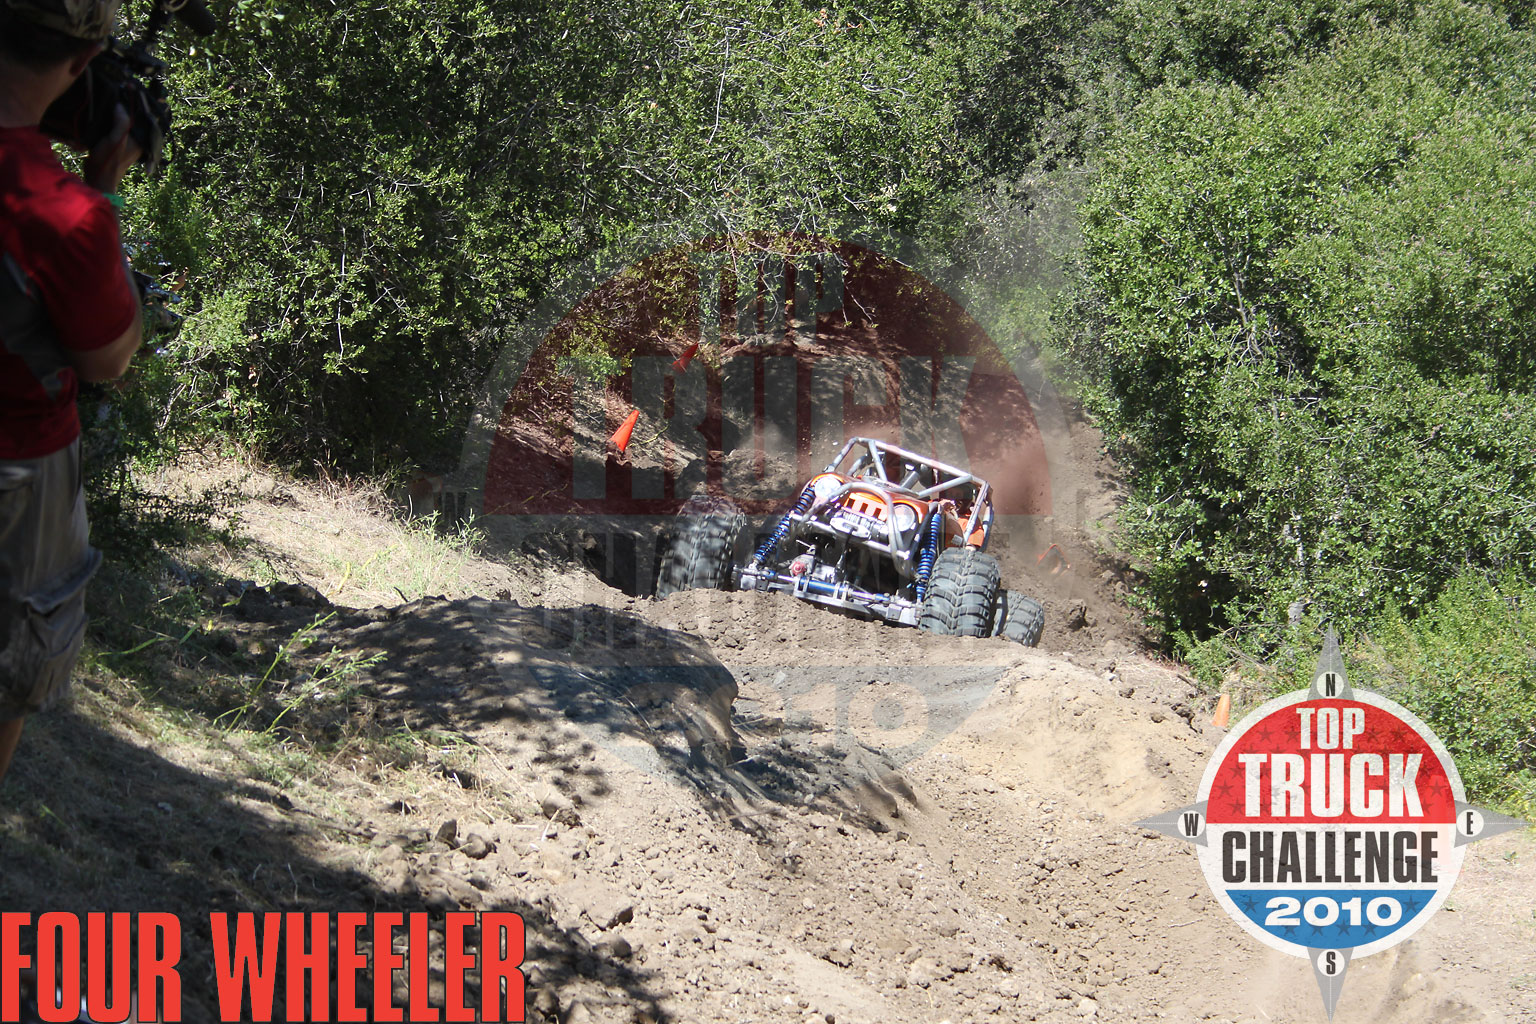 129 1006 4816+2010 top truck challenge hill climb+leo kuether 2007 cole works fat girl buggy